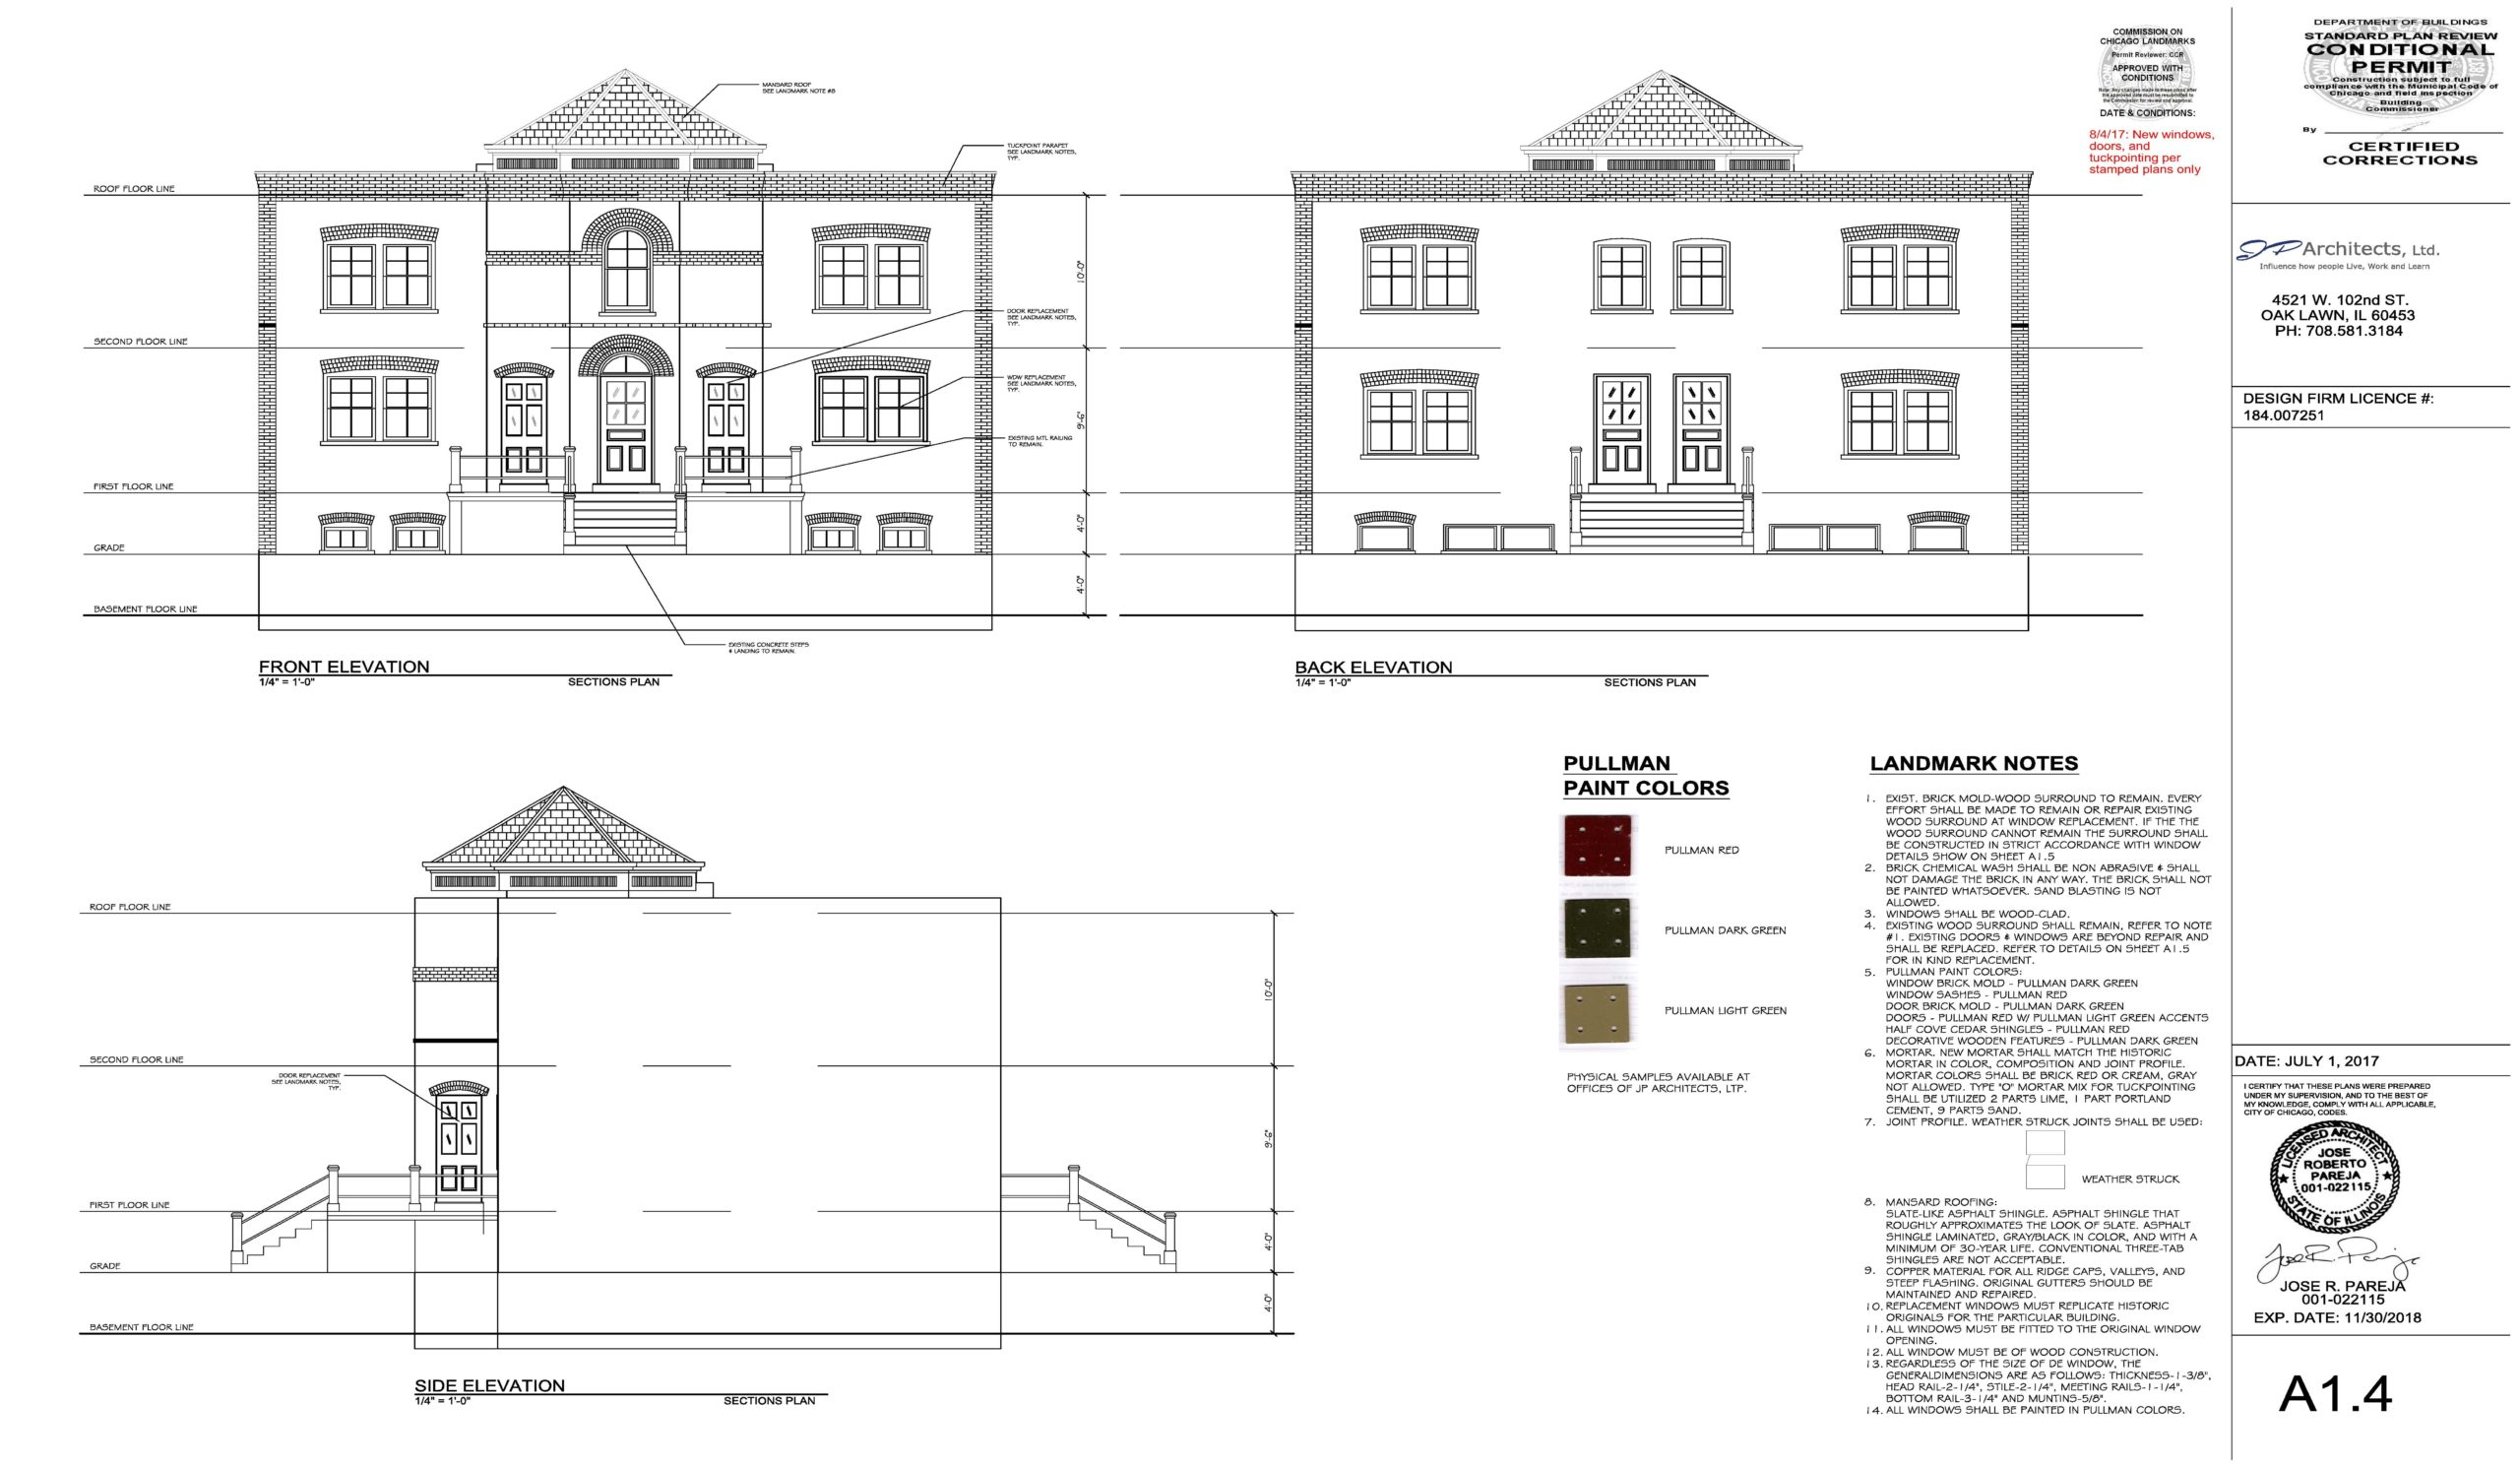 This image shows the architectural documents that describe in detail the landmark construction specifications for our Pullman Row Home project